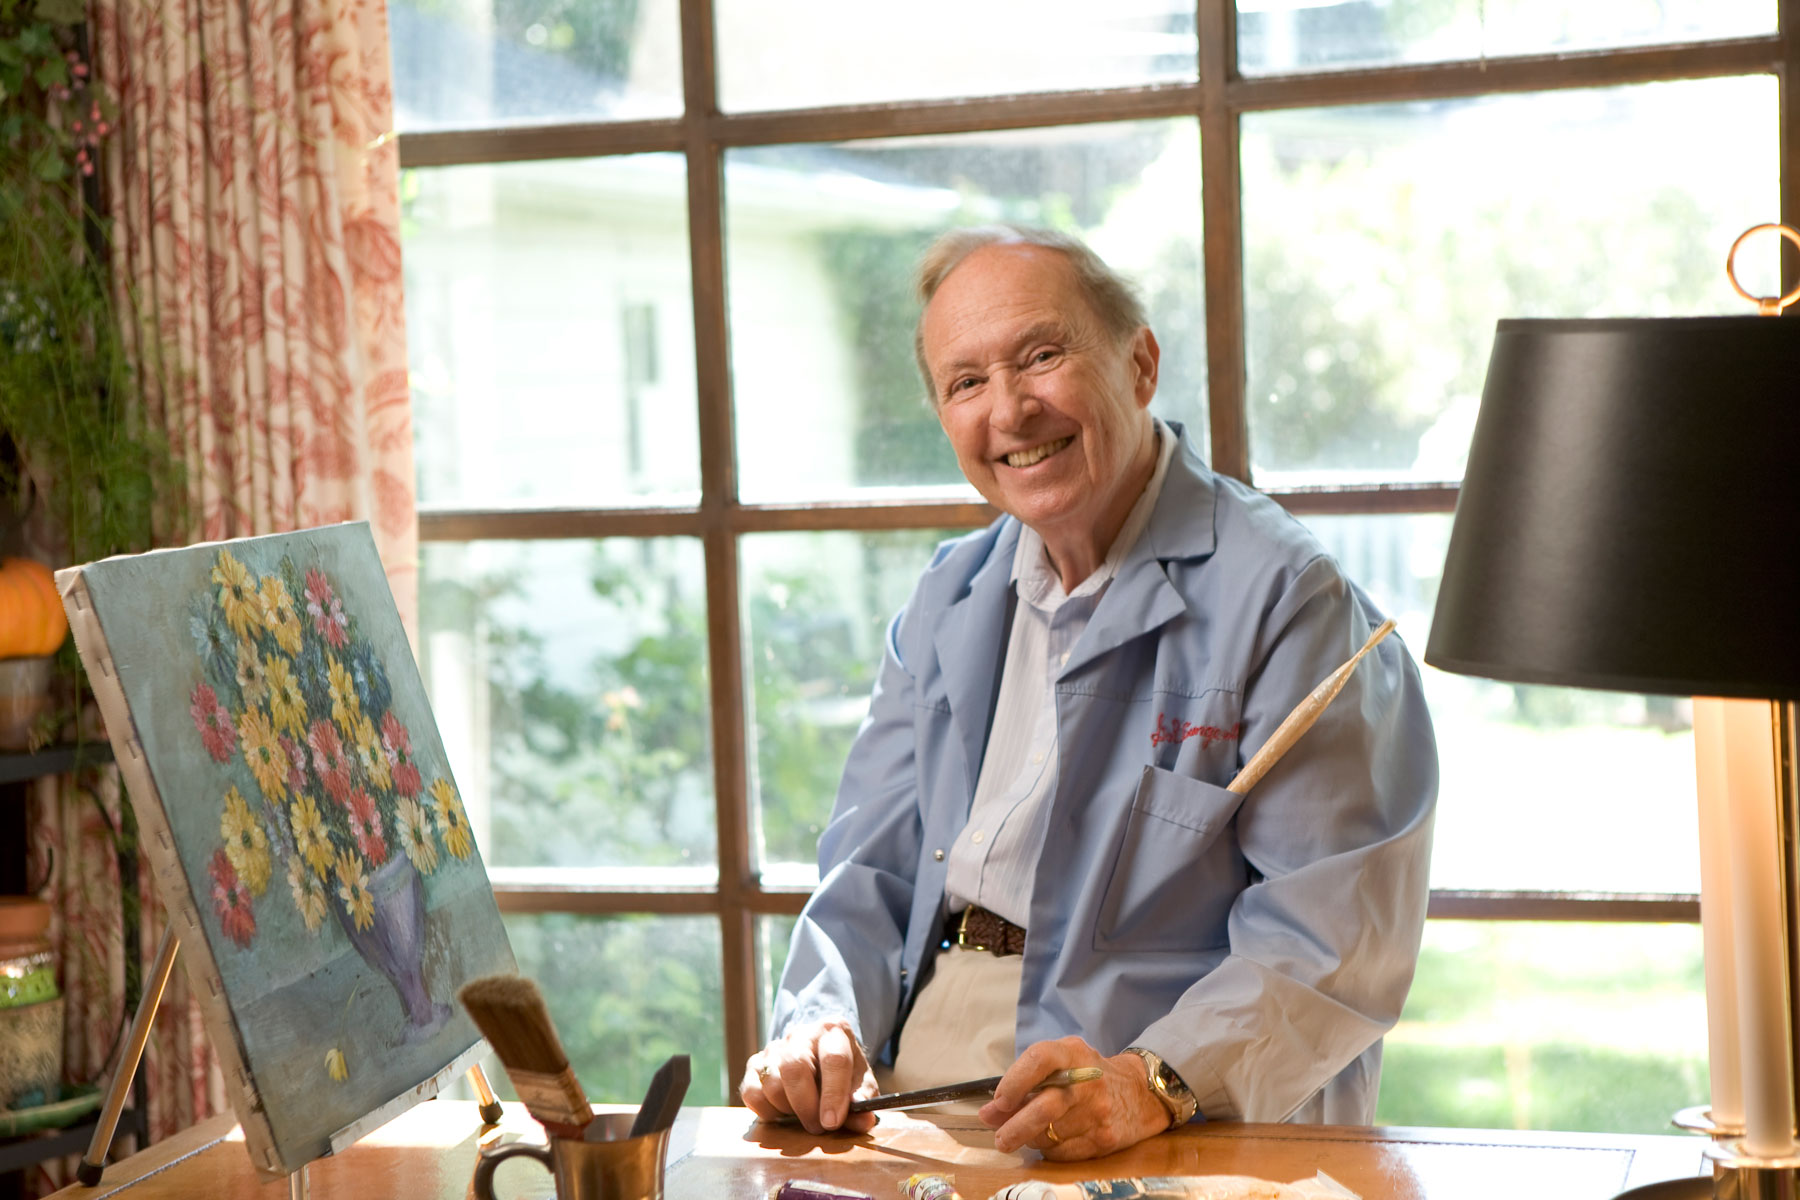 Artistic man in blue jacket painting at a desk in front of window.